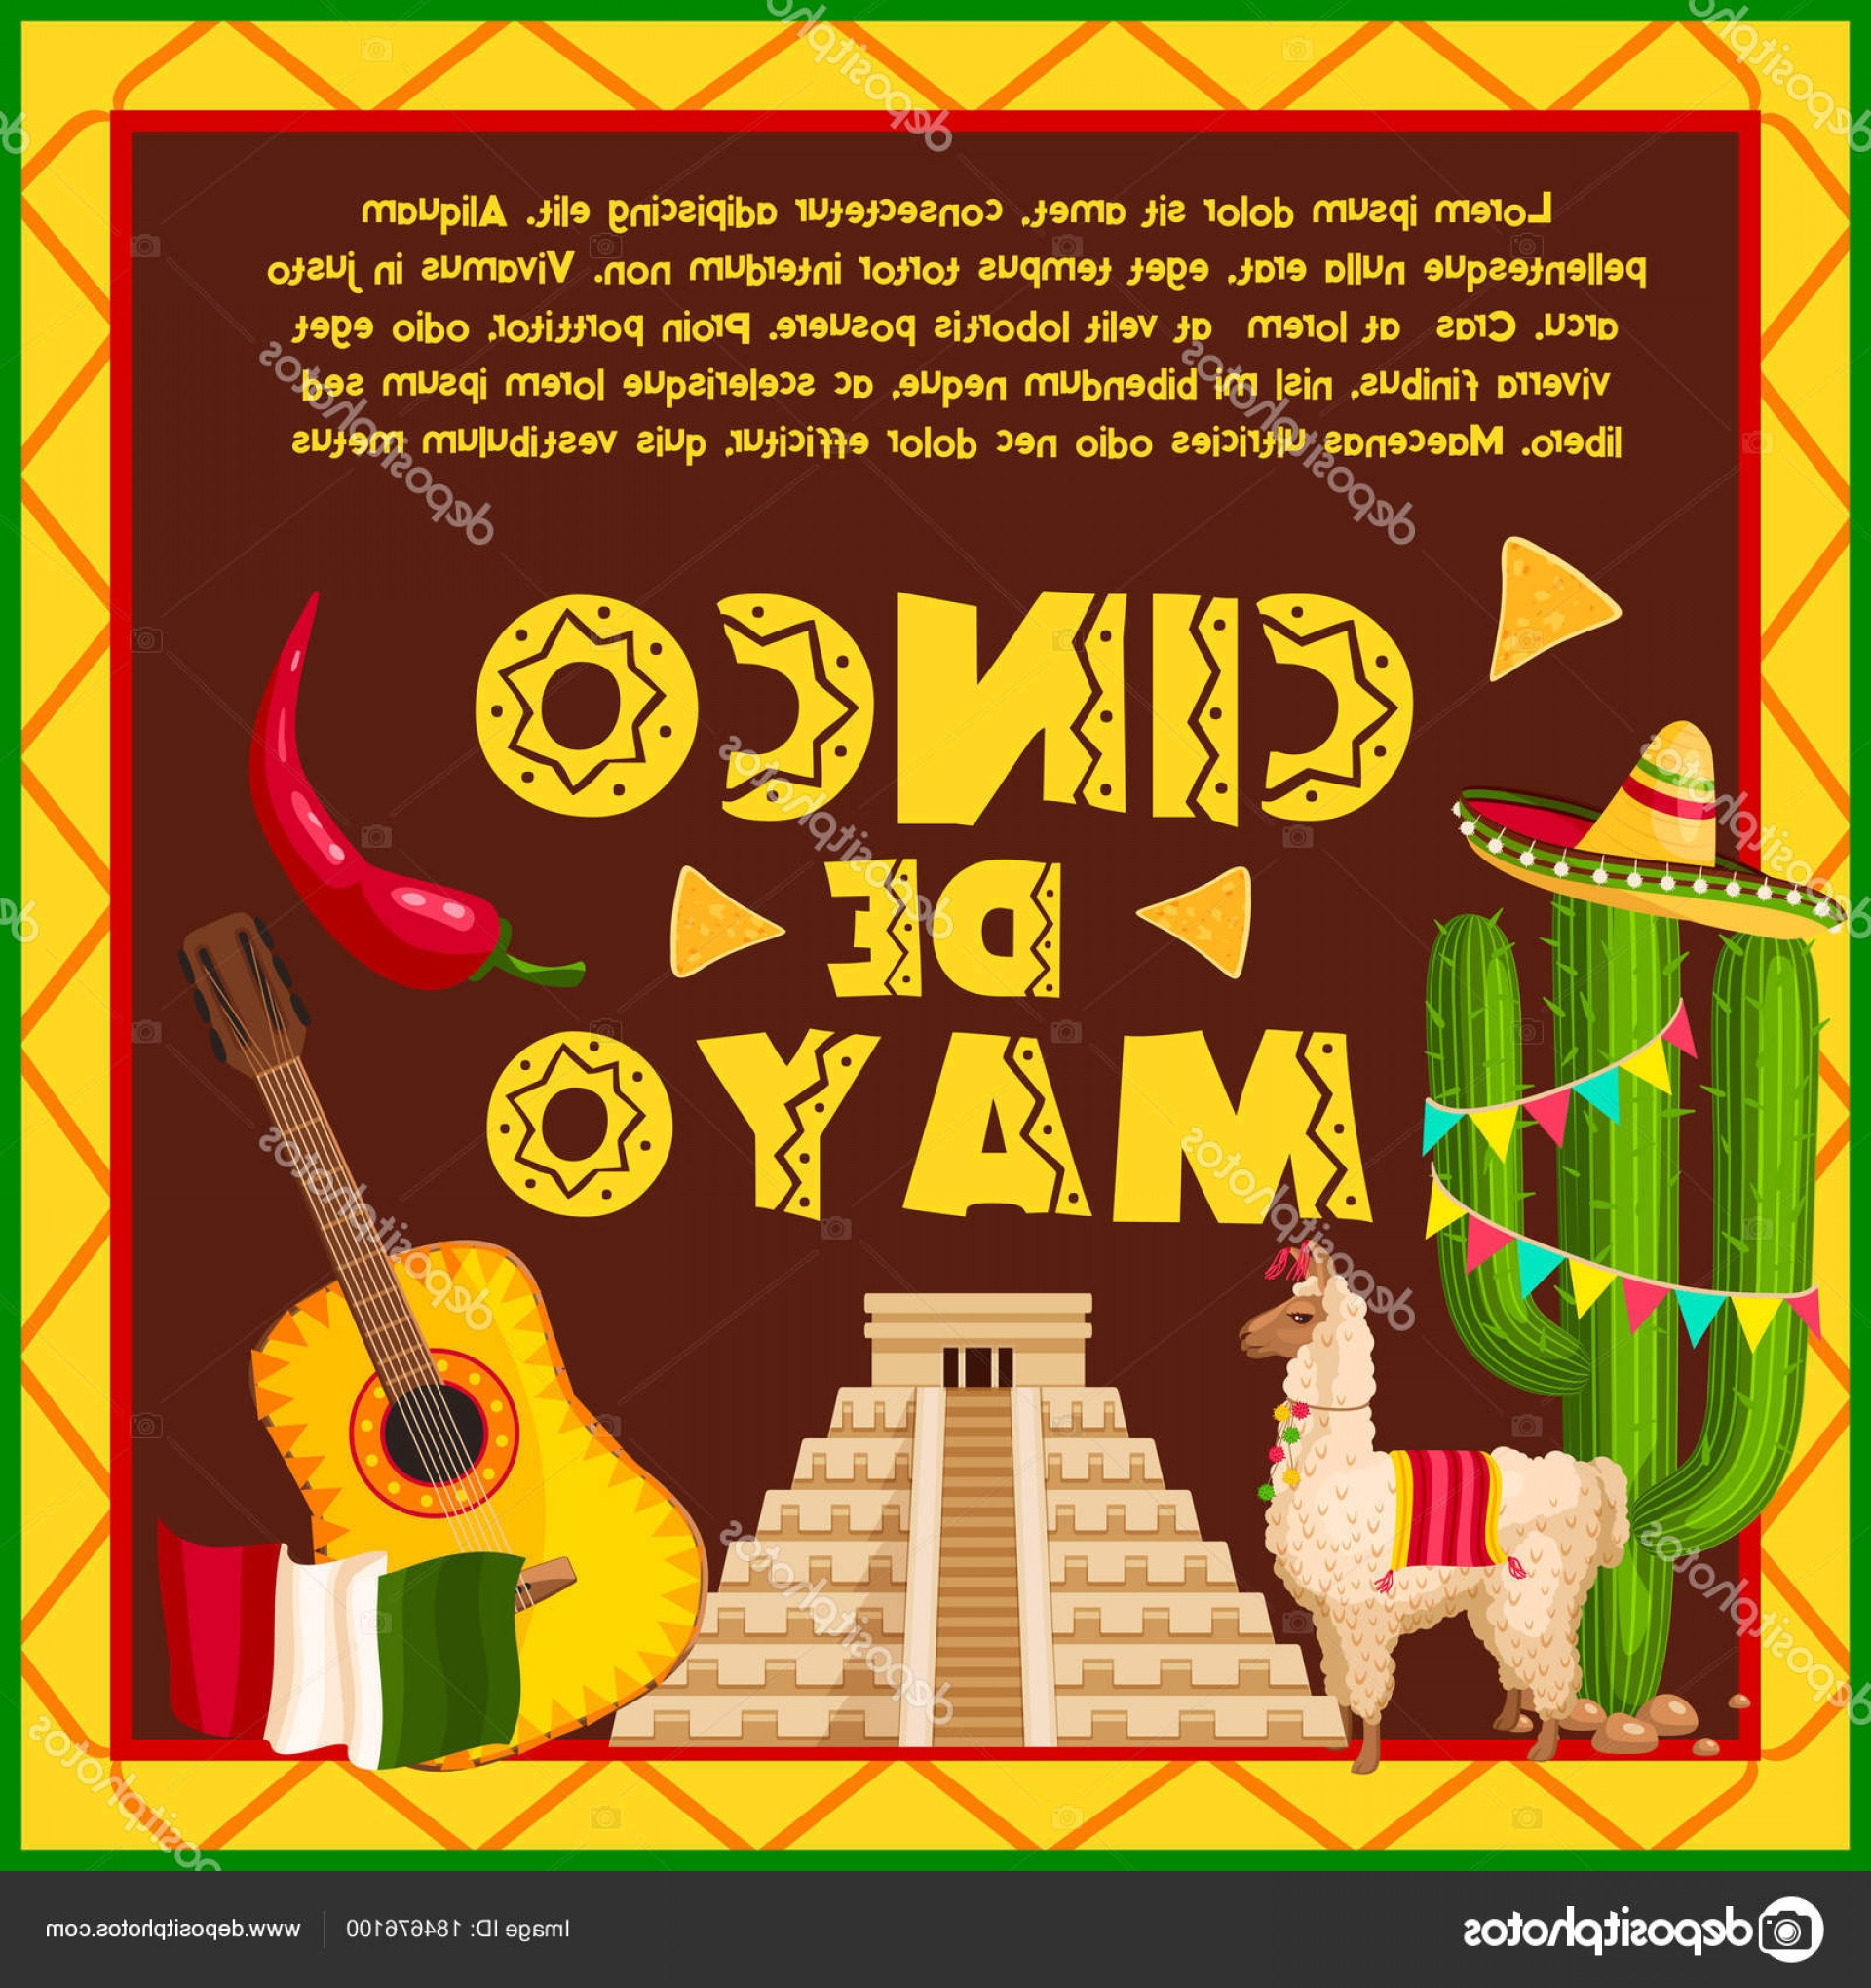 Aztec Cactus Vector: Stock Illustration Mexican Holiday Card For Cinco